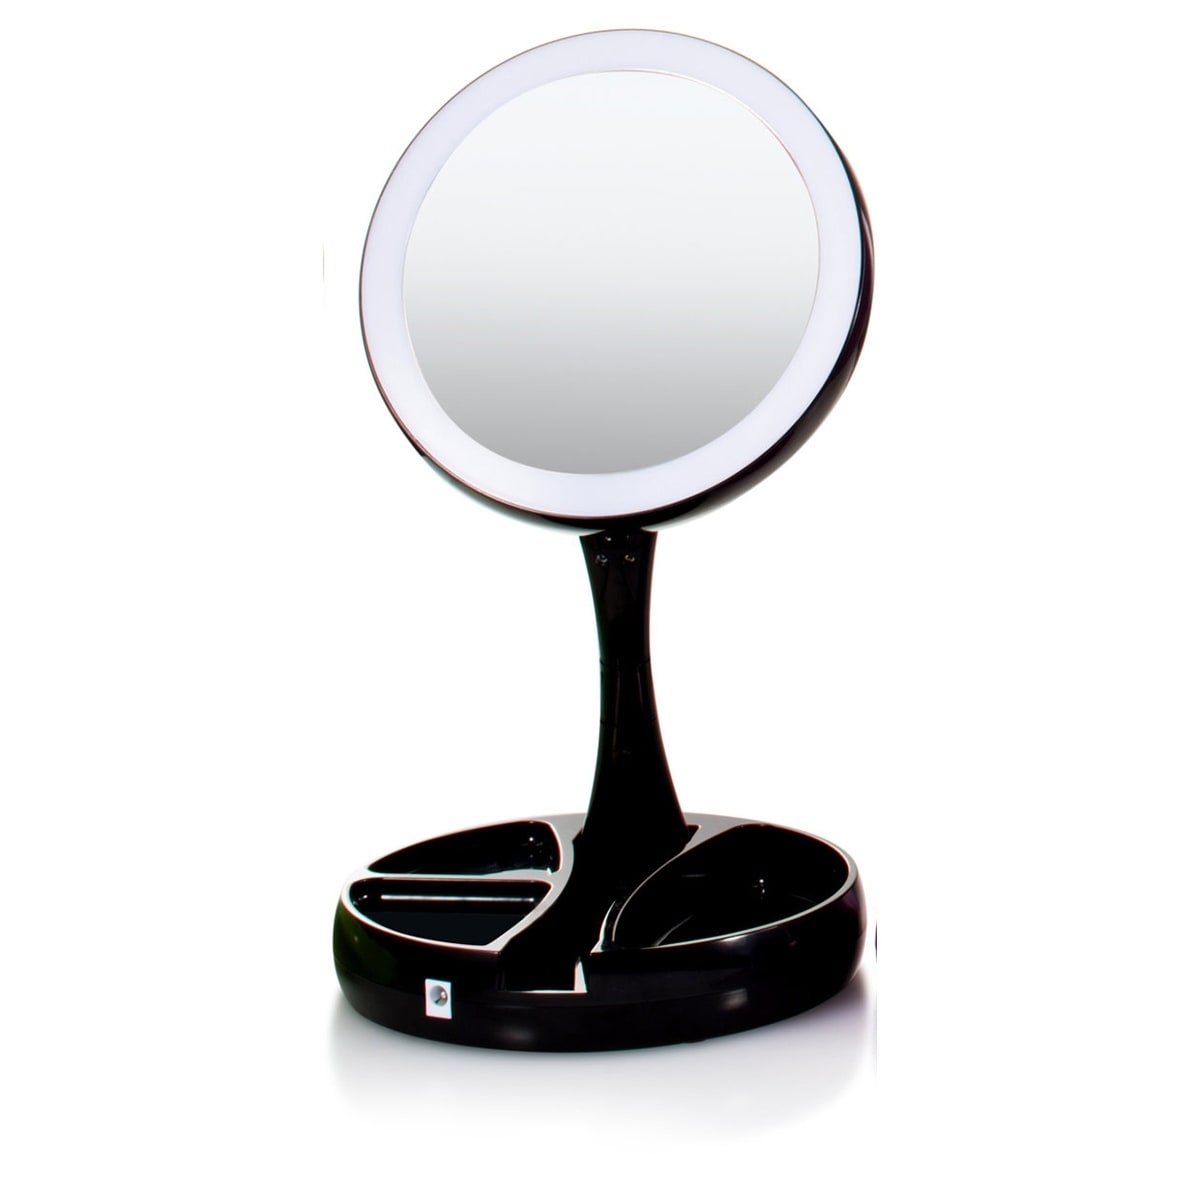 Shop my foldaway mirror lighted double sided vanity mirror as seen shop my foldaway mirror lighted double sided vanity mirror as seen on tv free shipping on orders over 45 overstock 17653951 aloadofball Gallery